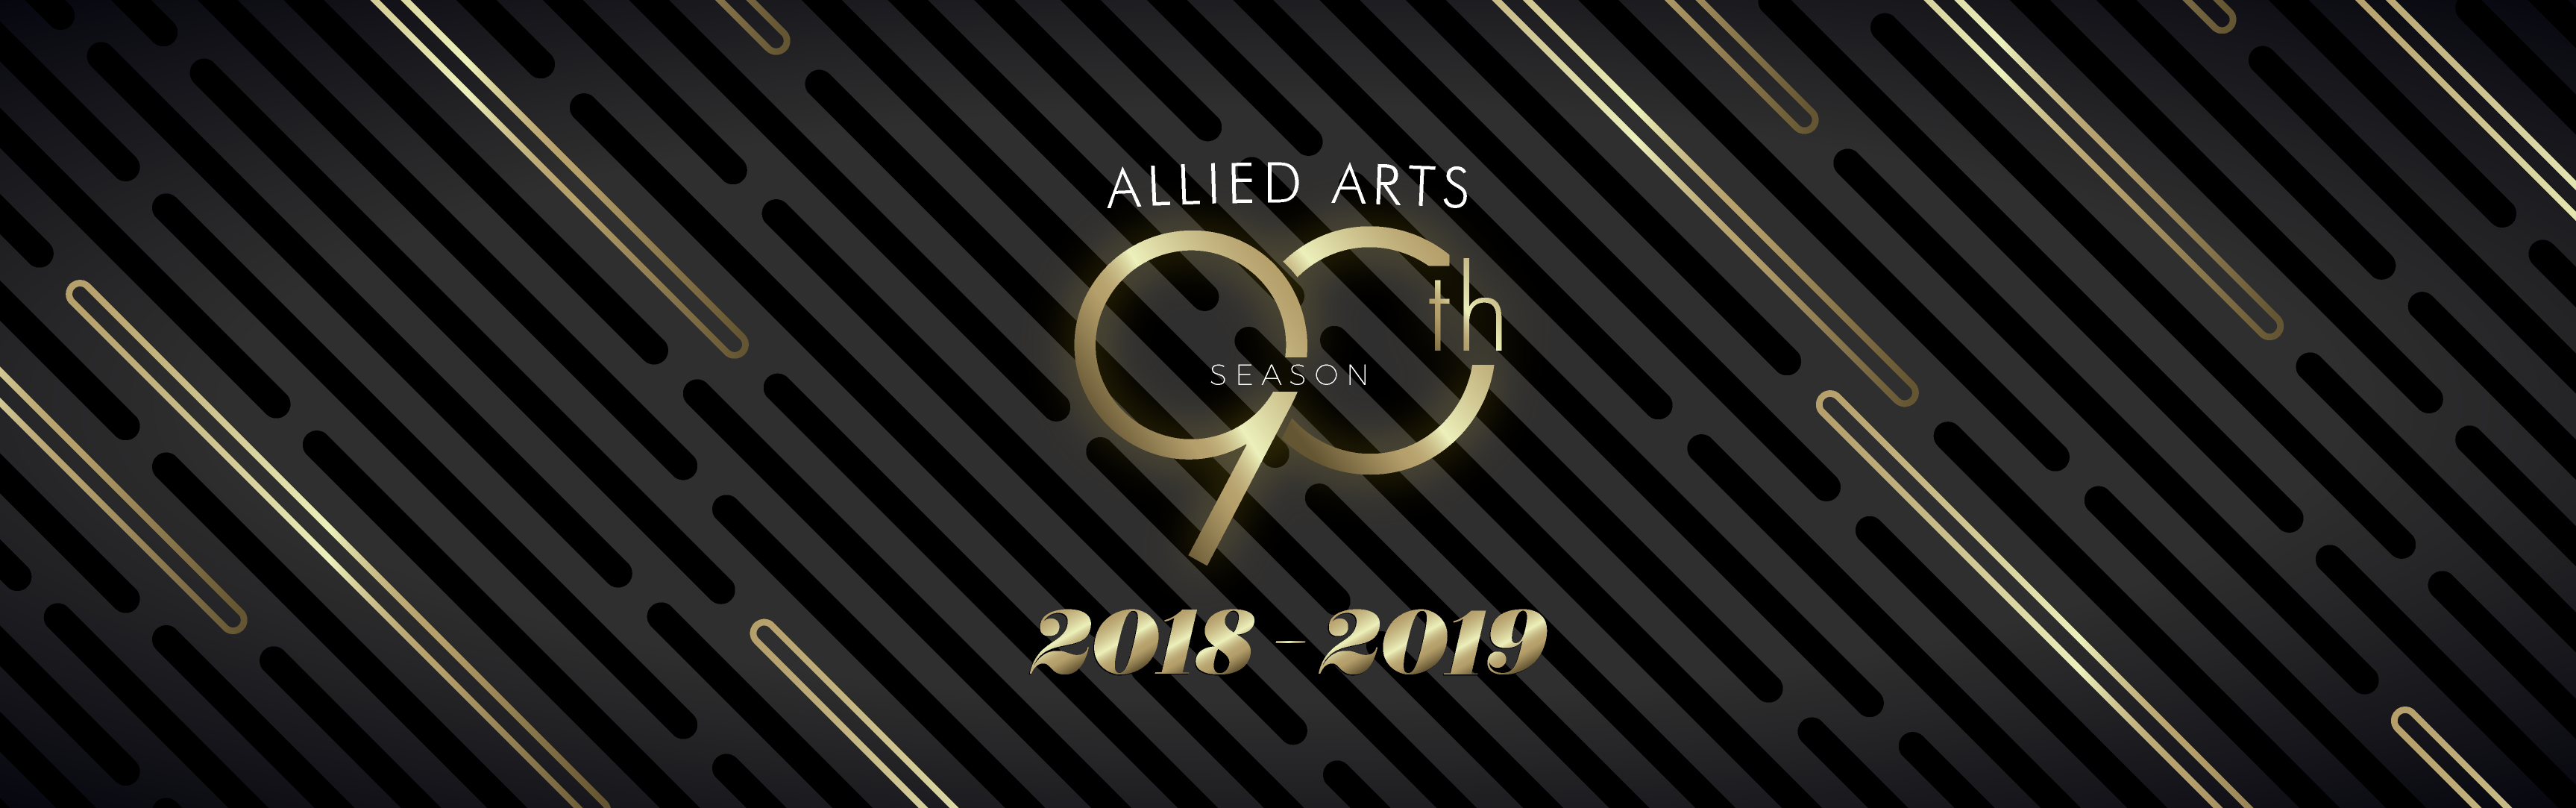 Allied Arts 2018-2019 Season